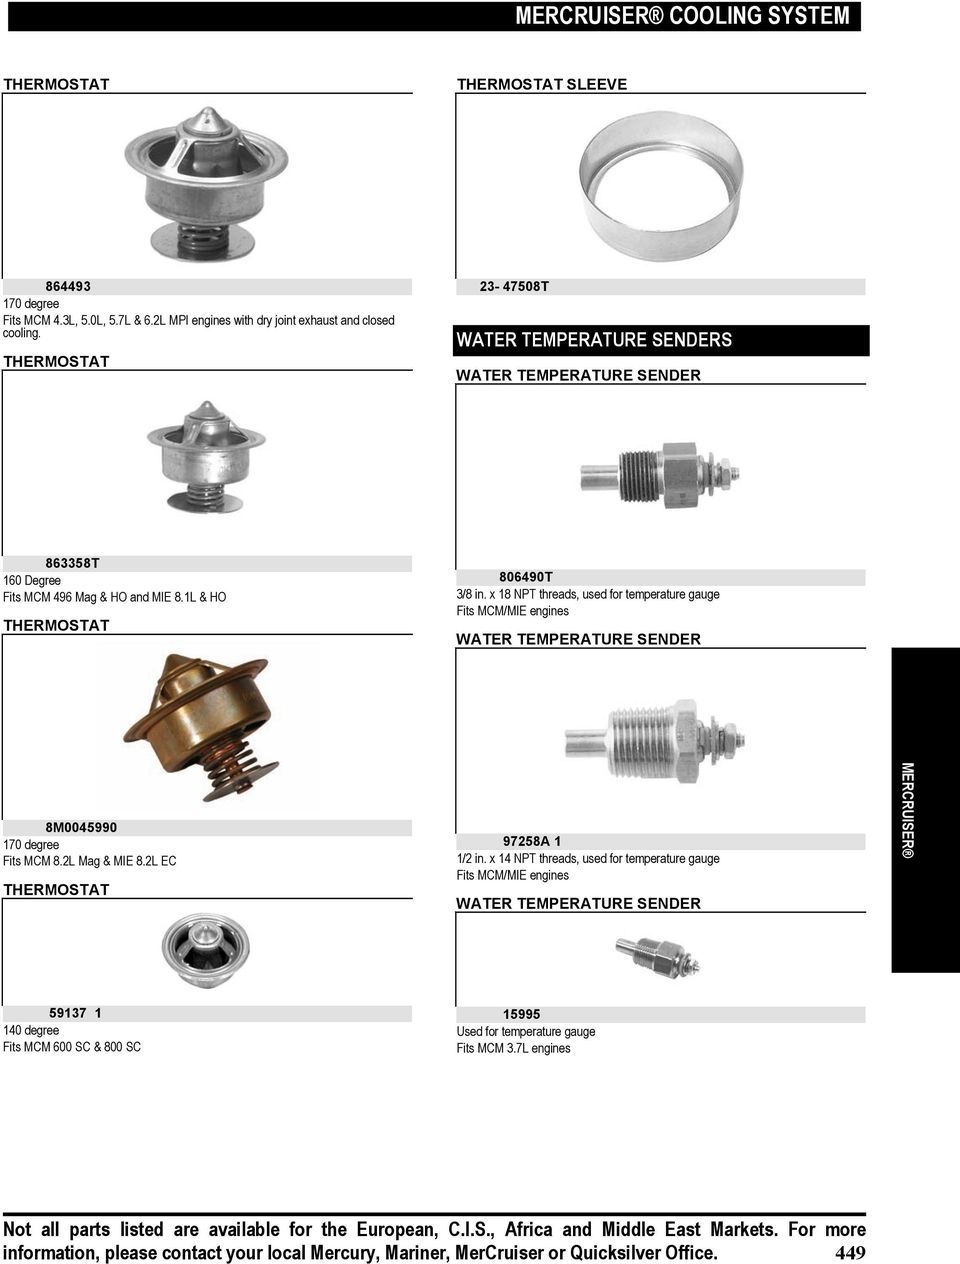 hight resolution of x 18 npt threads used for temperature gauge fits mcm mie engines water temperature